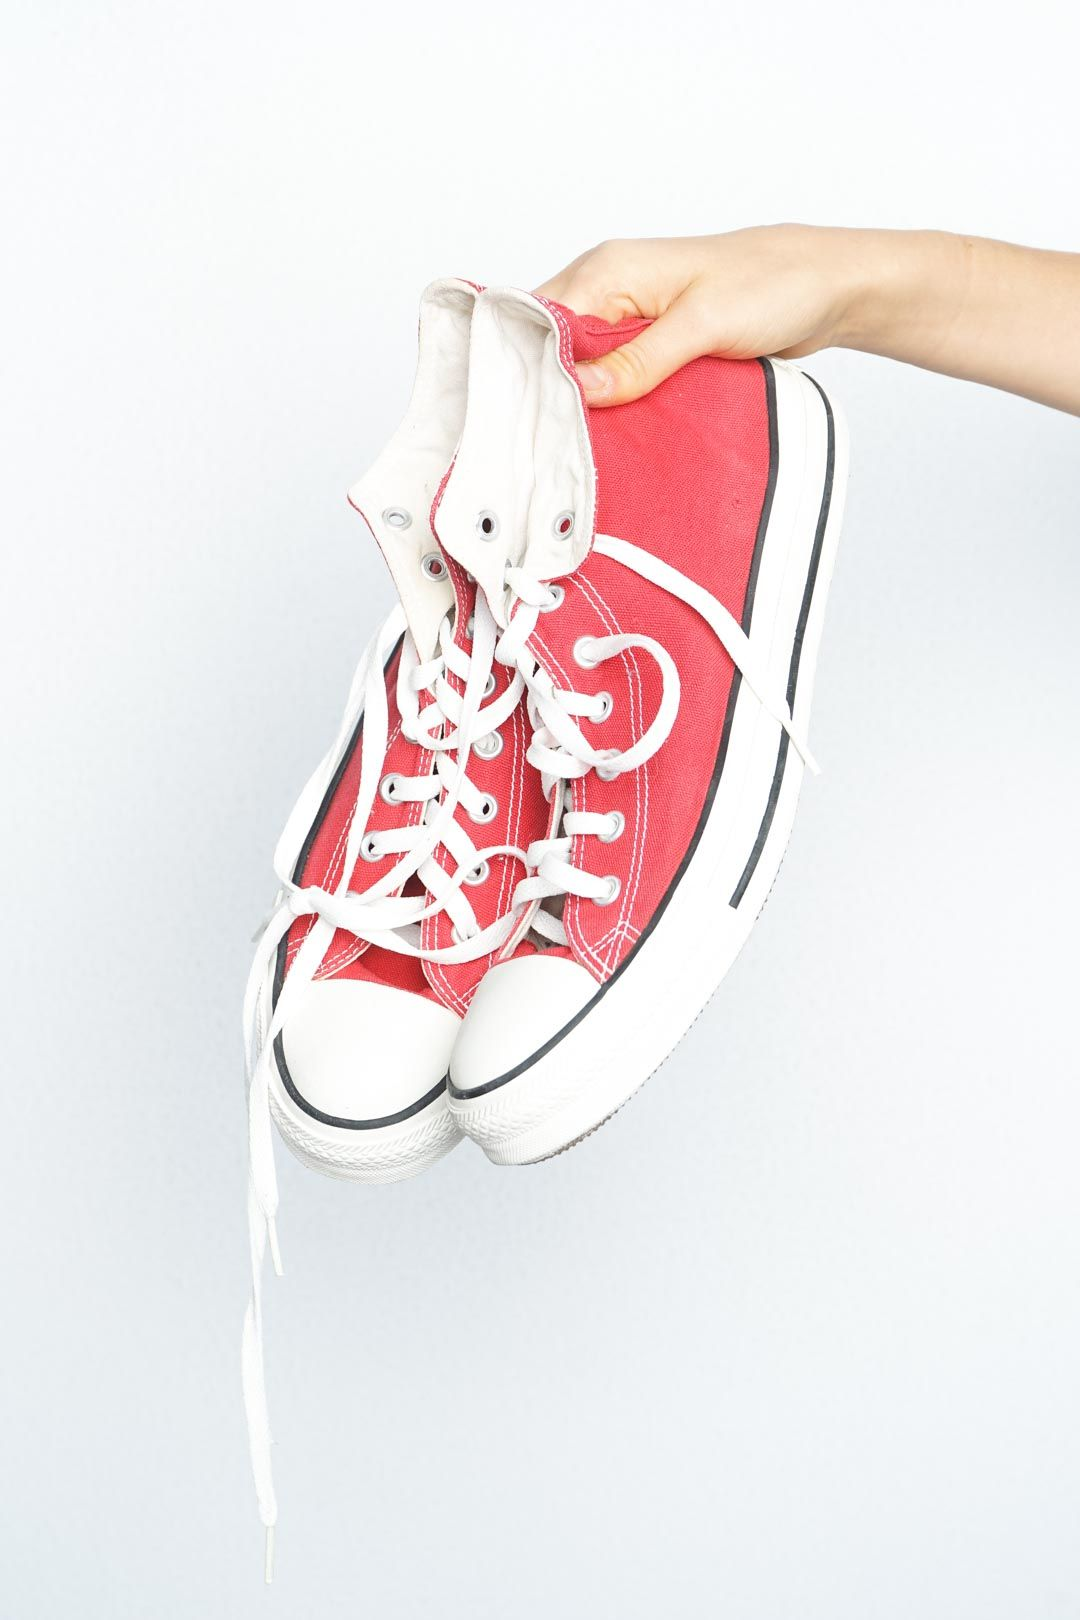 Converse All-Star Red Sneaker - VinoKilo.com